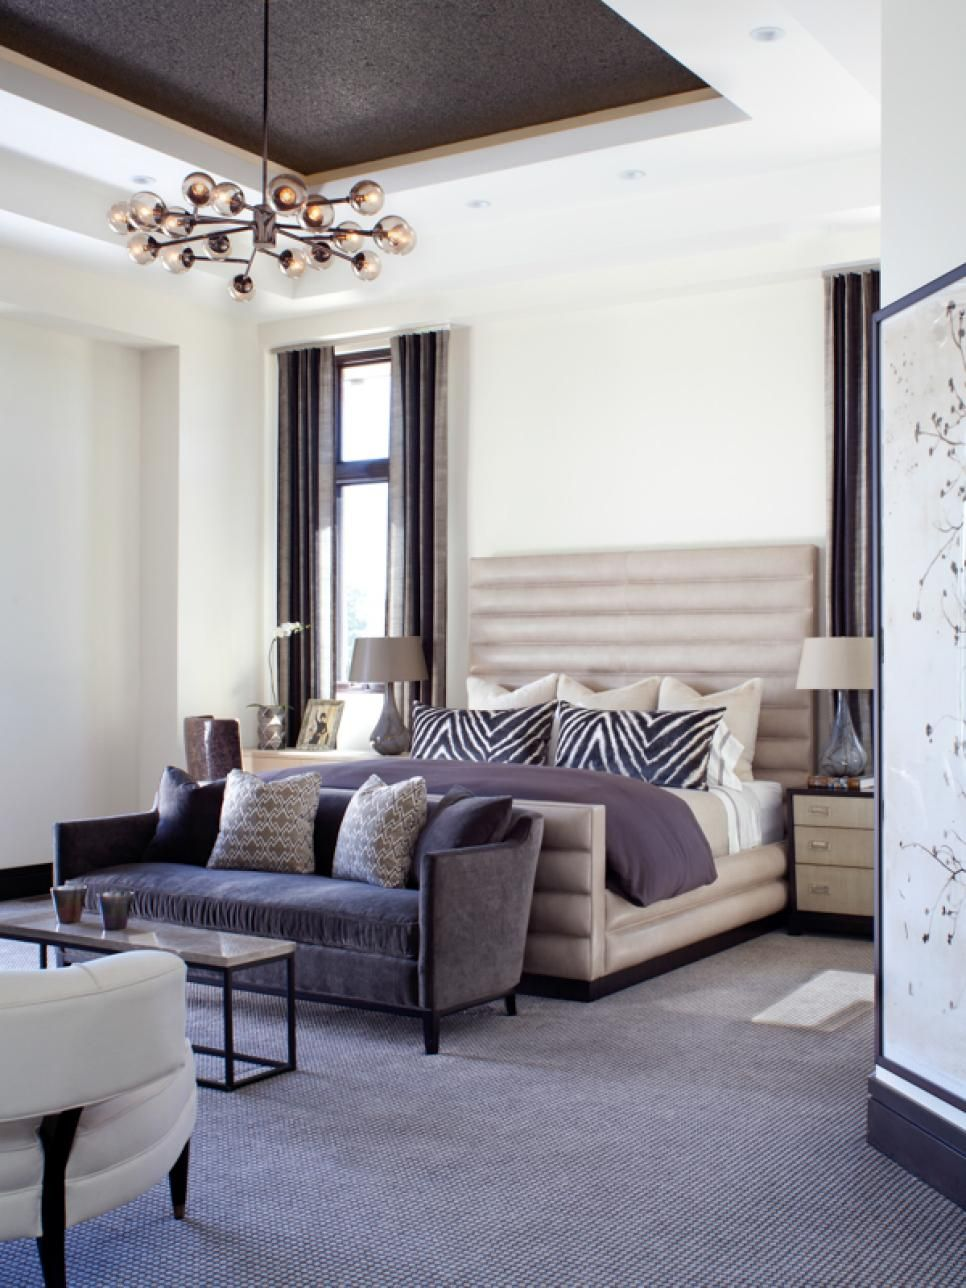 Master Bedroom Sitting Areas Bedroom With Sitting Area Elegant Master Bedroom Traditional Bedroom Design